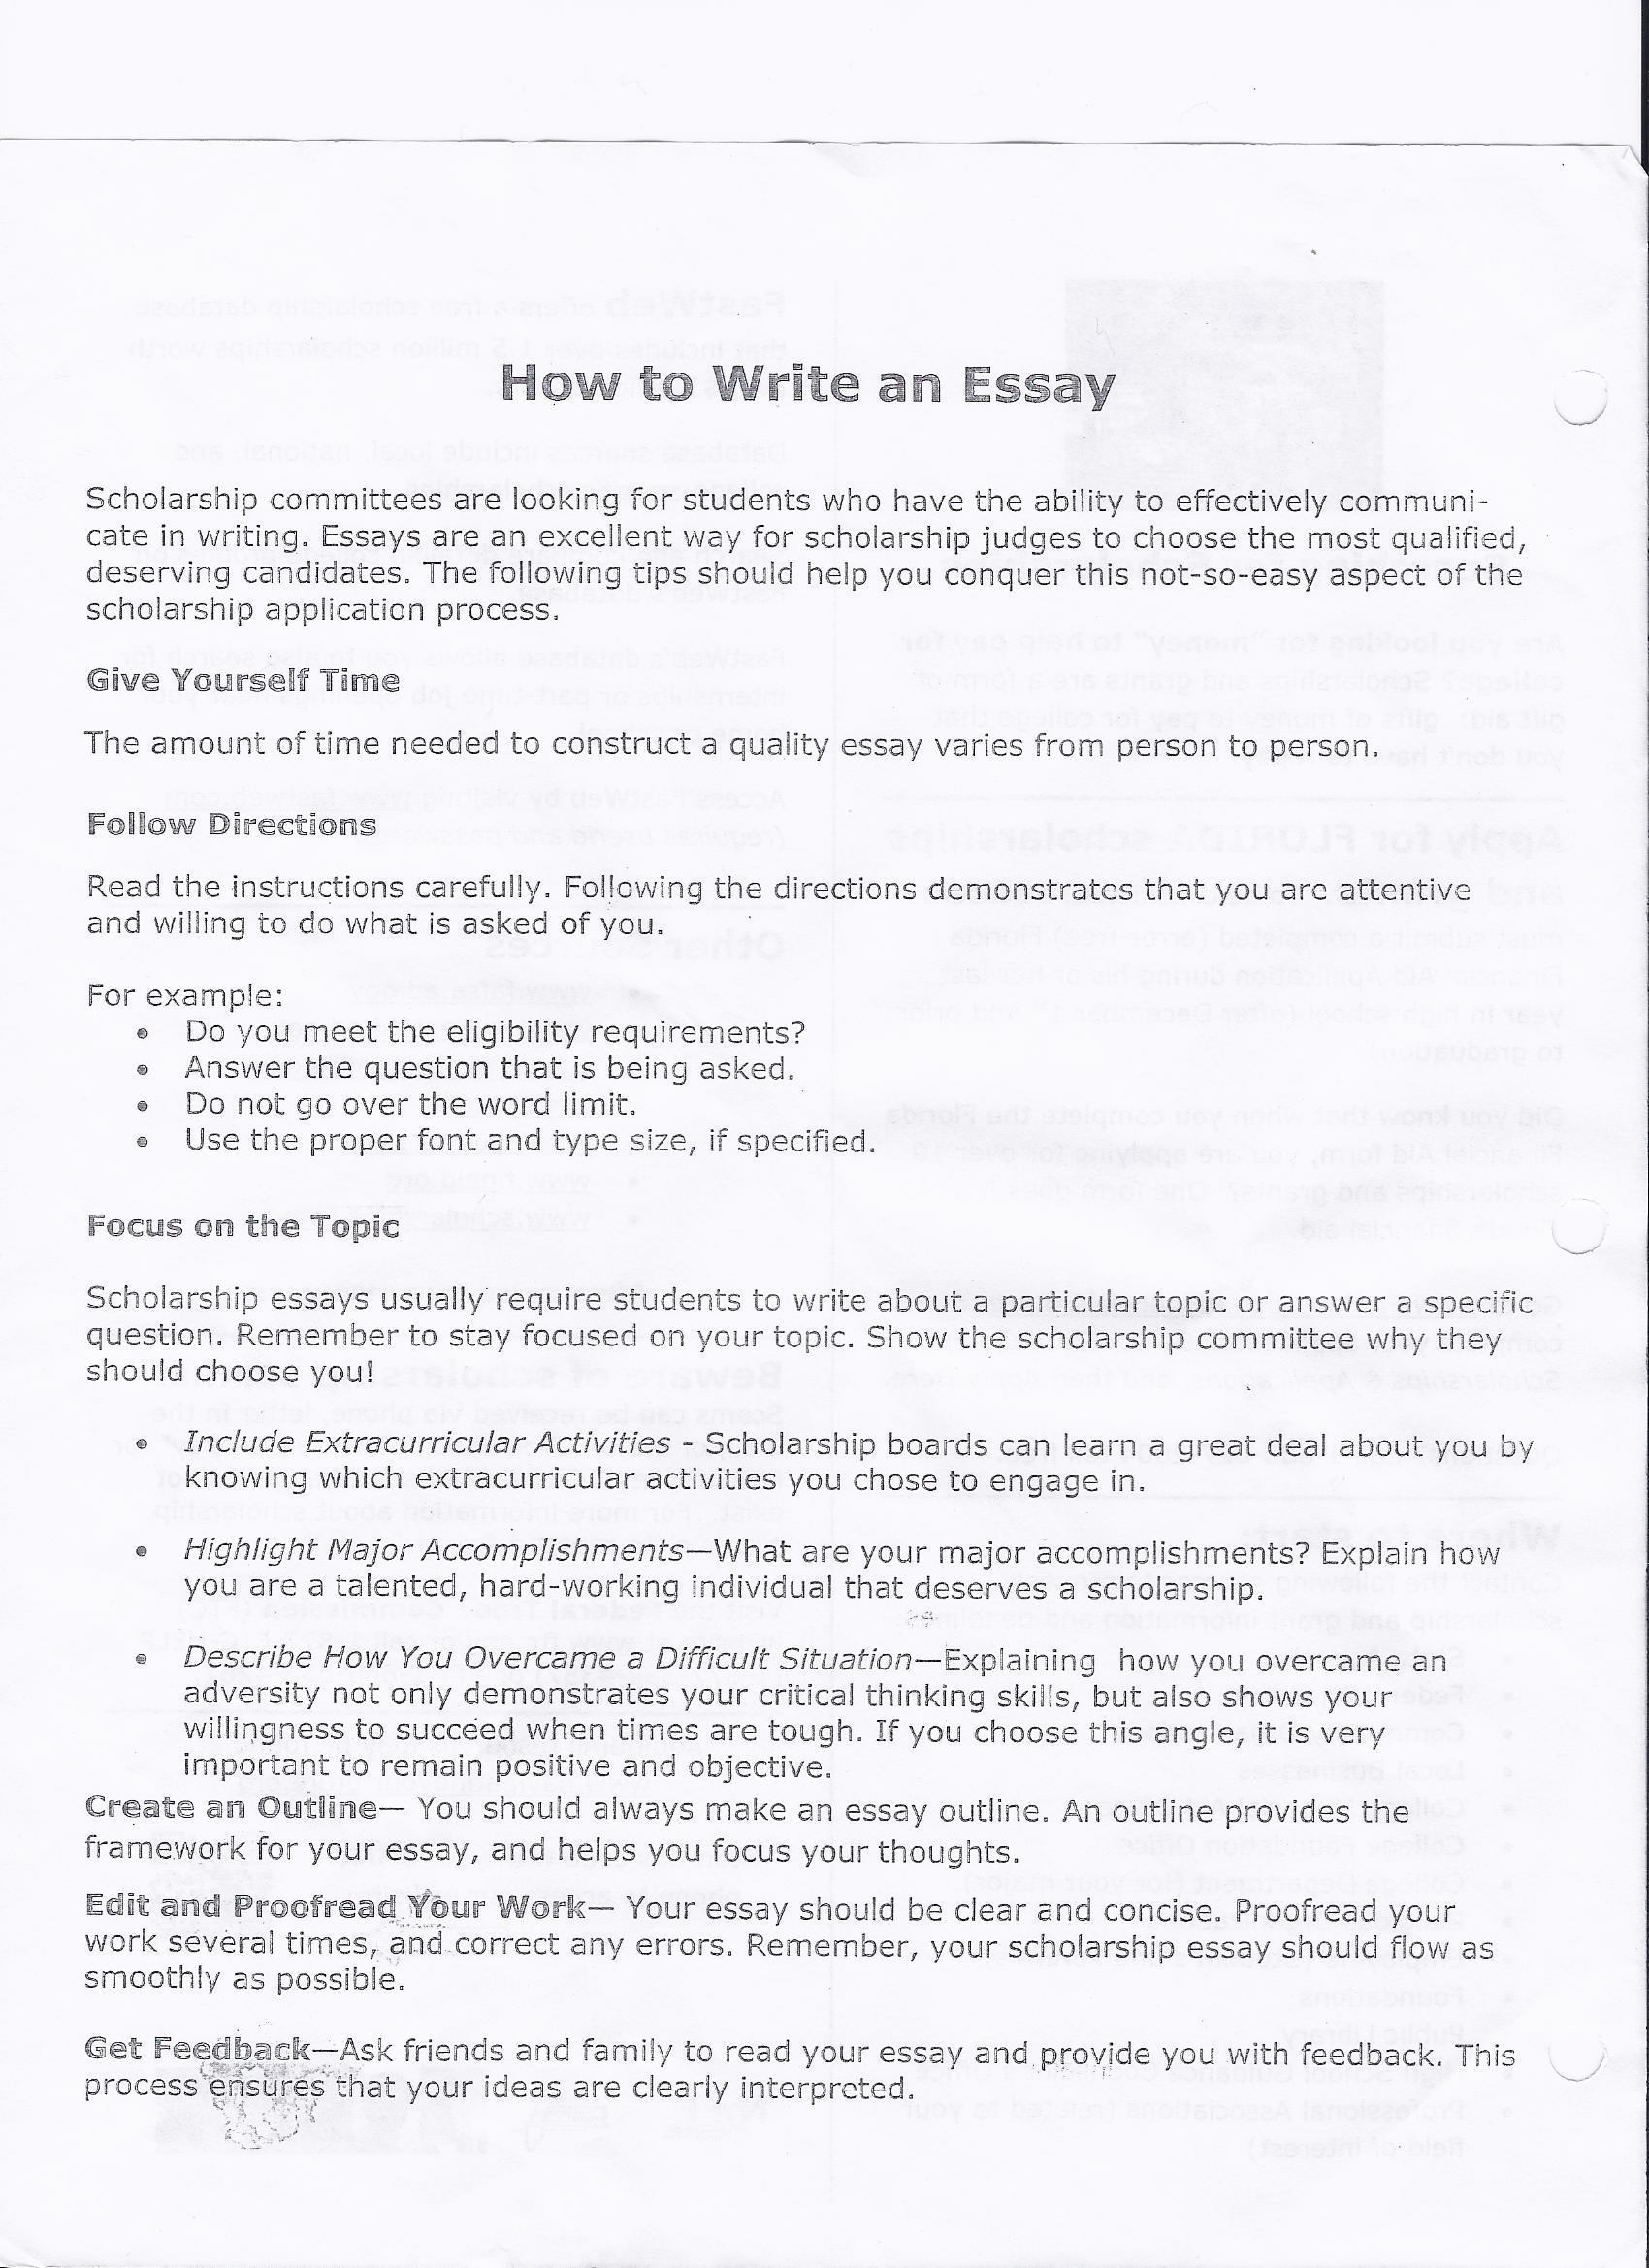 cause and effect essay reflection Essay #wrightessay cause and effect words, essay writing words, example of reflection letter, pay to do essay, descriptive essay outline examples, essay on unity, comparative analysis essay template, essay for education, persuasive essays for middle school, dissertation abstracts online, list of topics for argumentative.